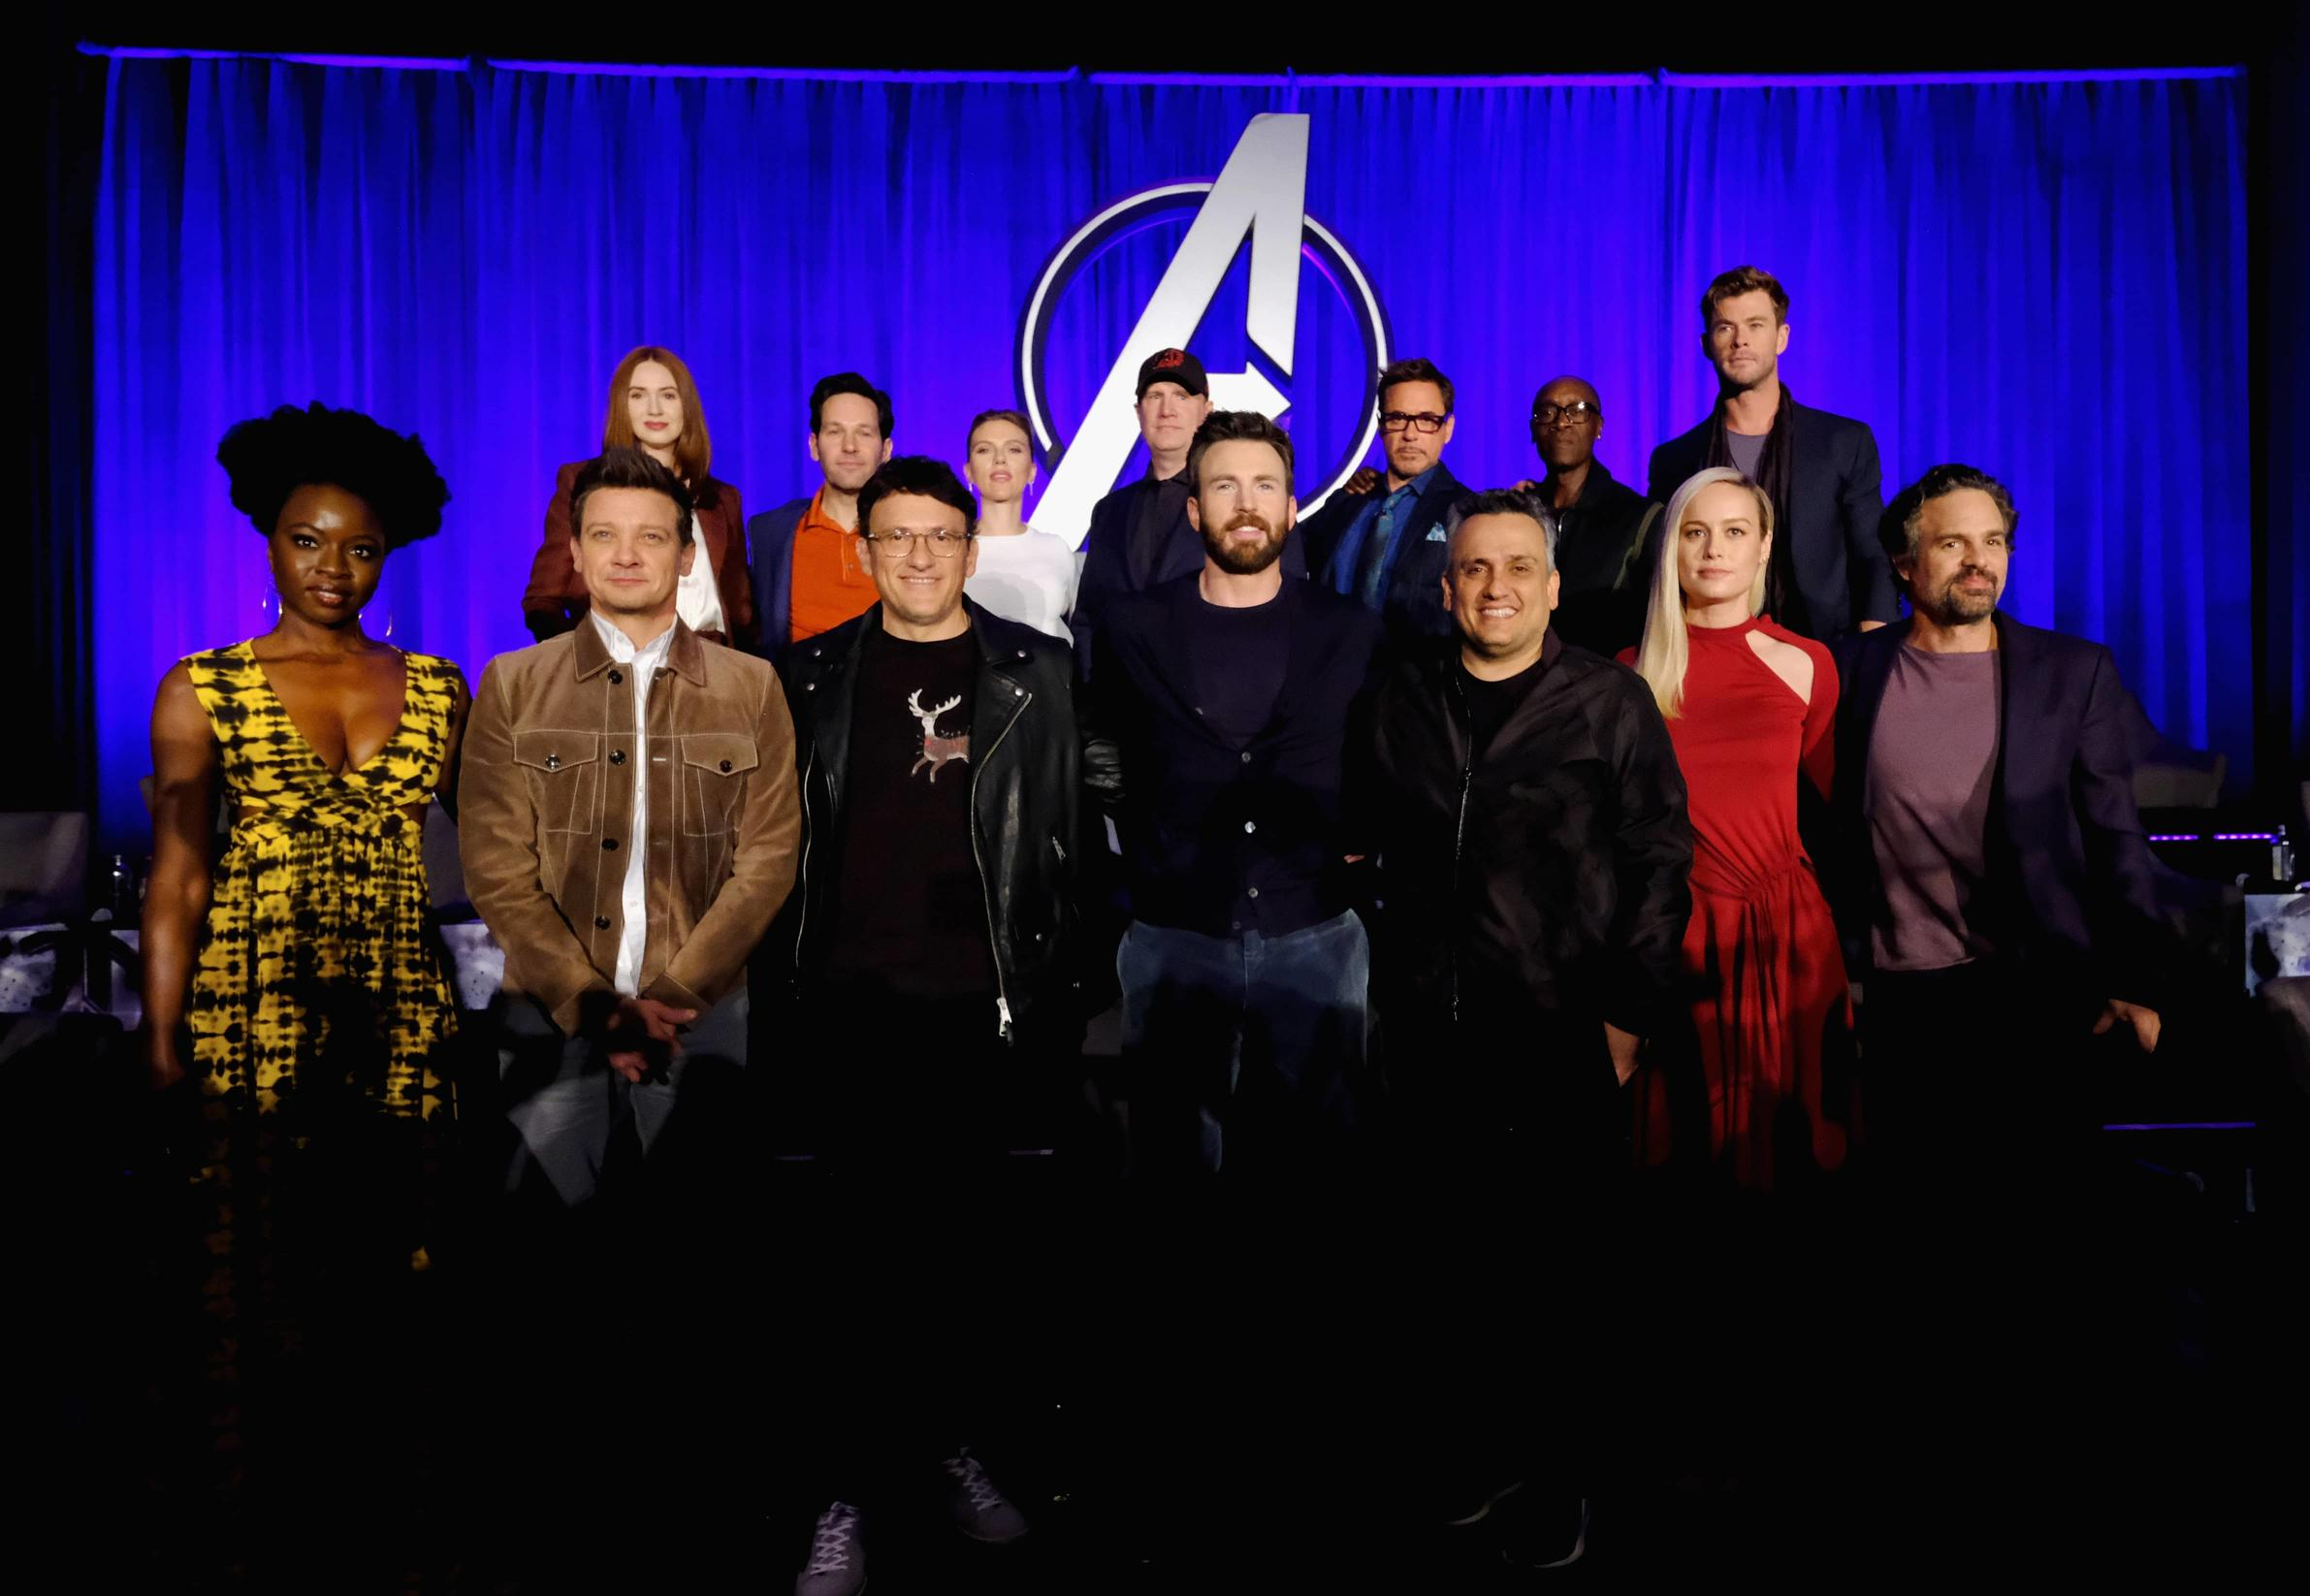 Avengers: Endgame global press conference